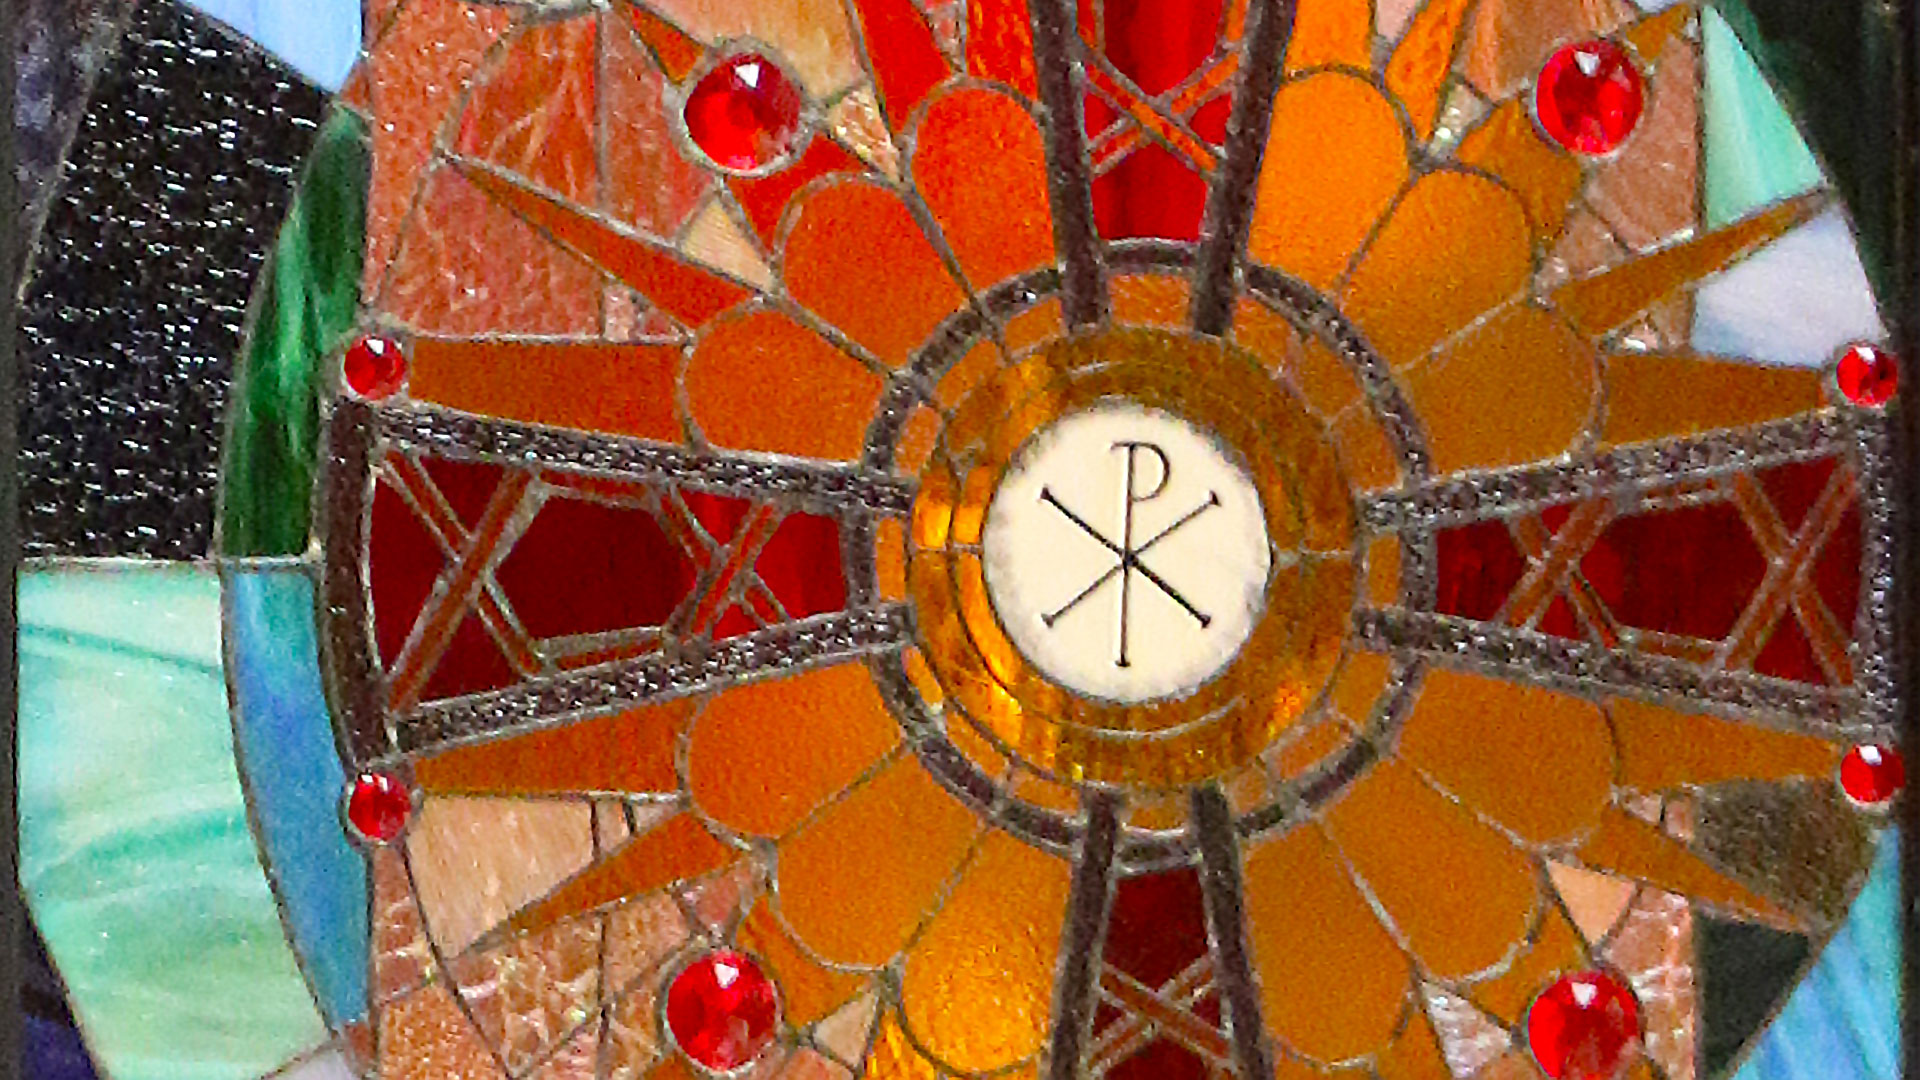 Catholic artists: Creating beauty with help from the Holy Spirit